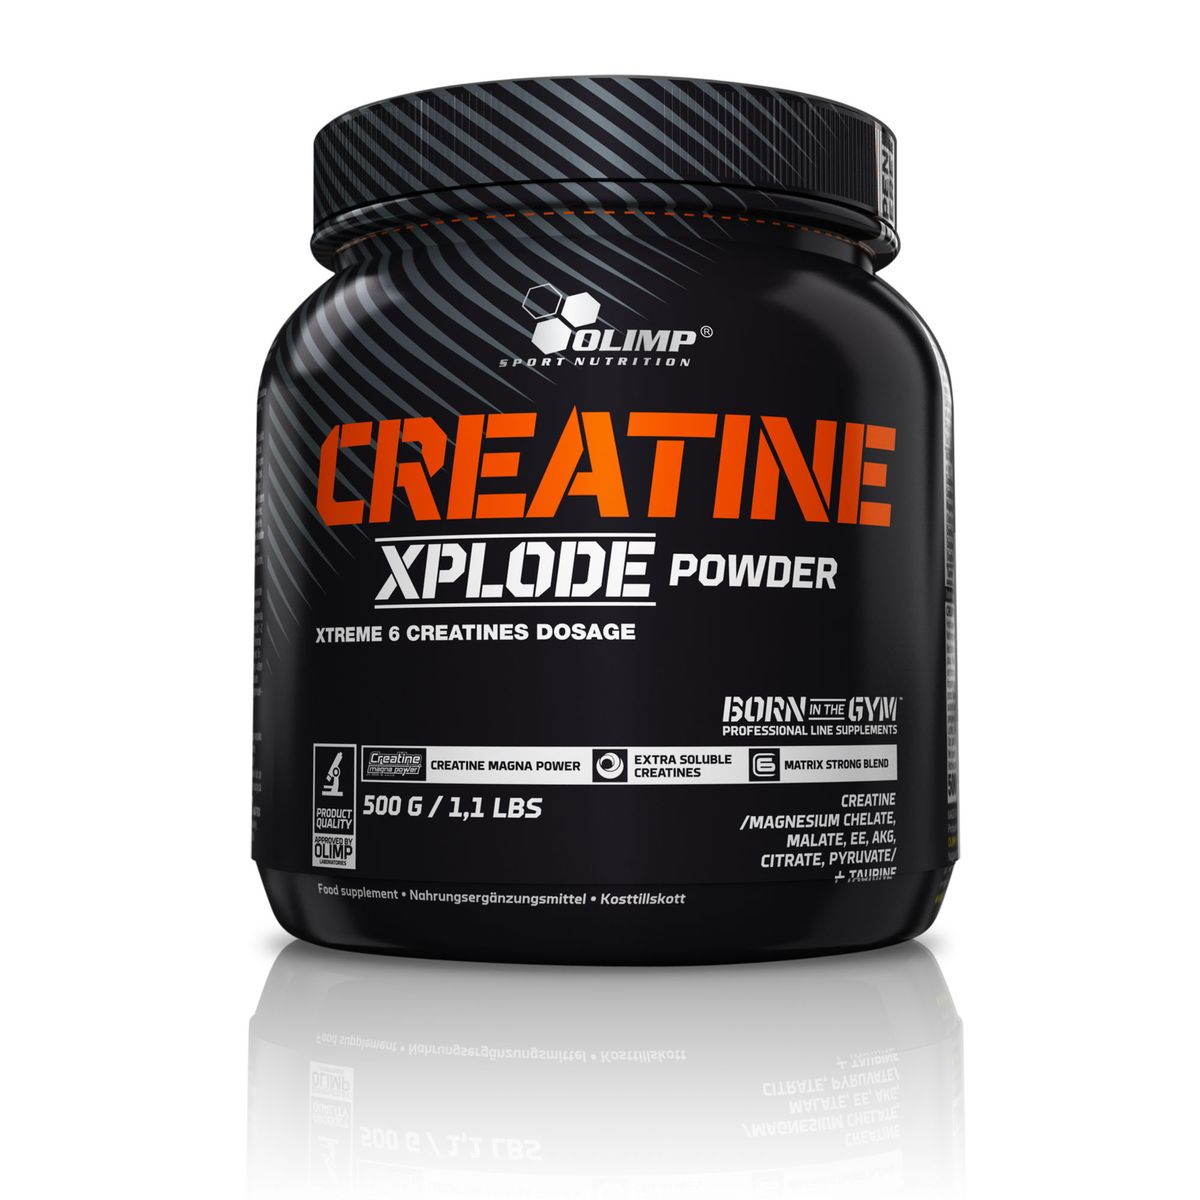 Креатин Olimp Sport Nutrition Creatine Xplode Powder, апельсин, 500 г протеин olimp sport nutrition provit 80 ваниль 700 г